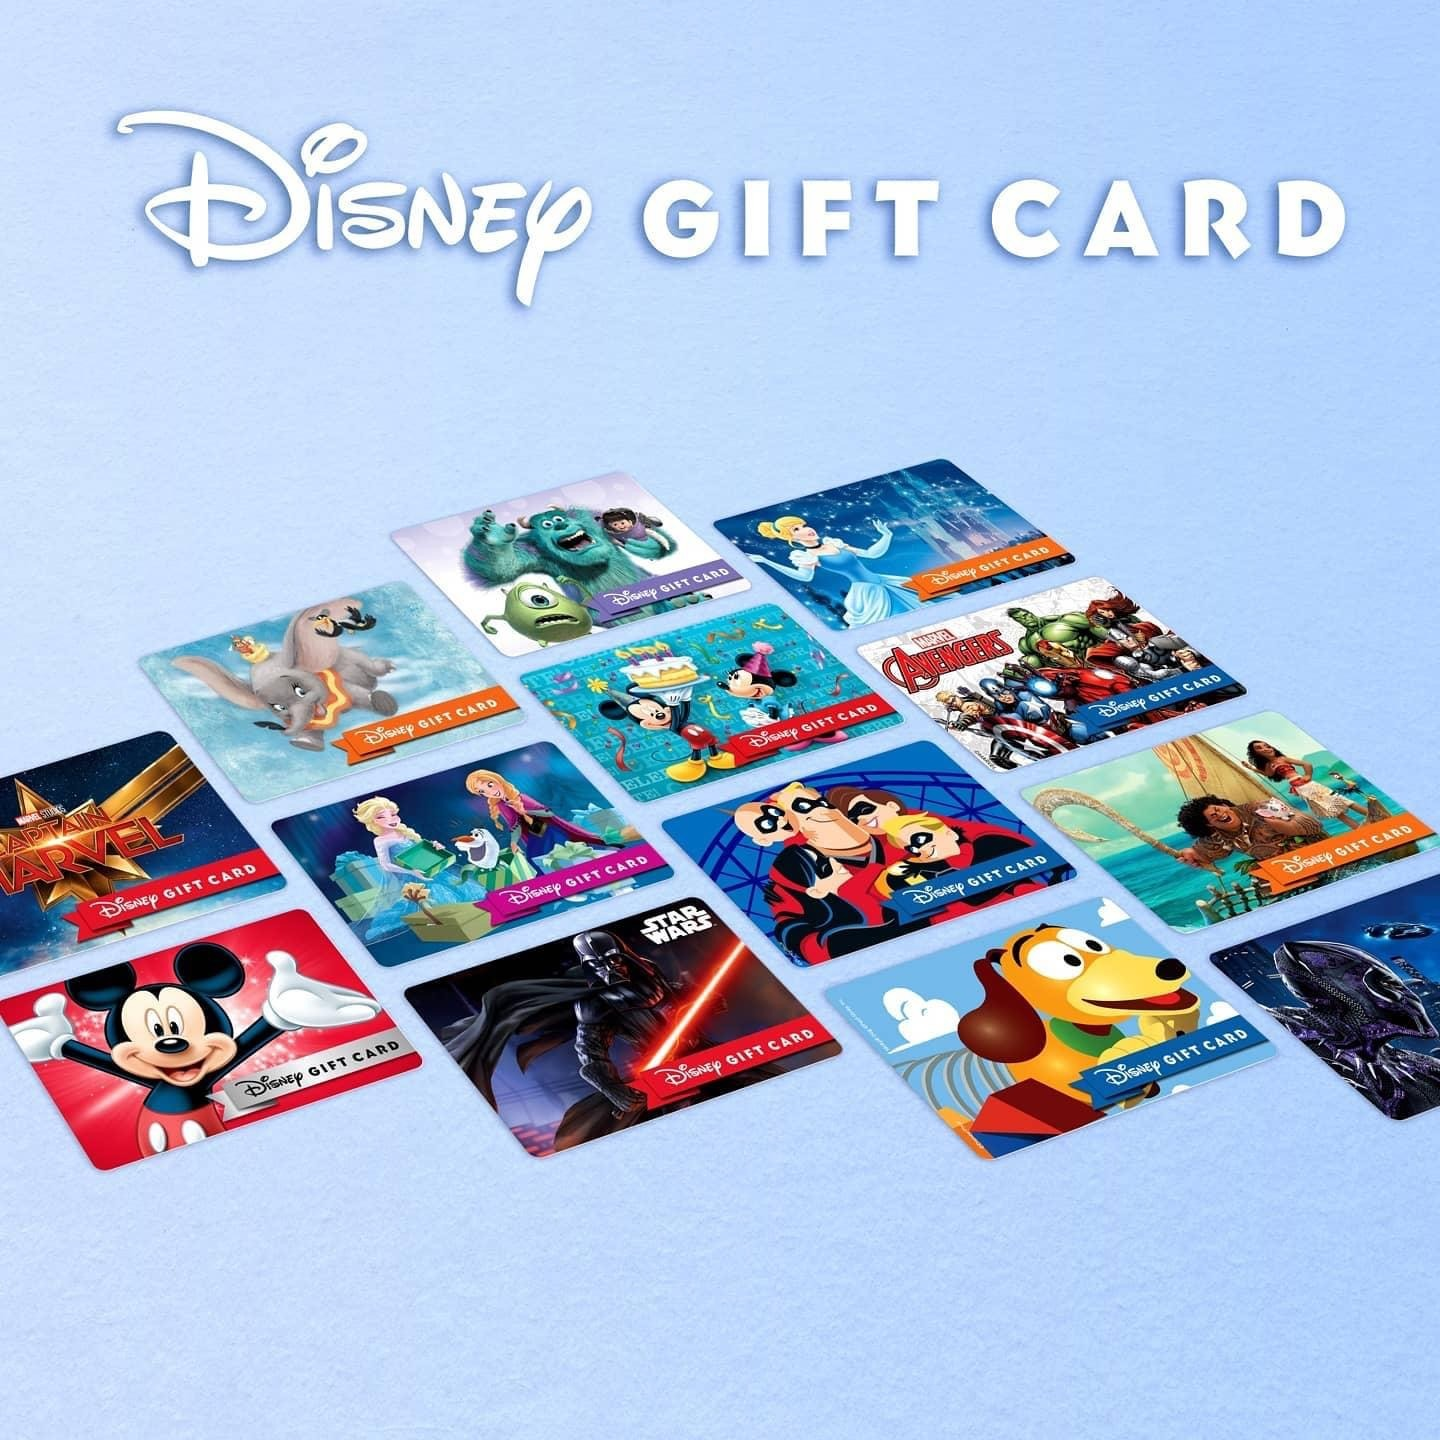 New Disney Gift Card Designs for Your Holiday Gift Giving from shopDisney! 1